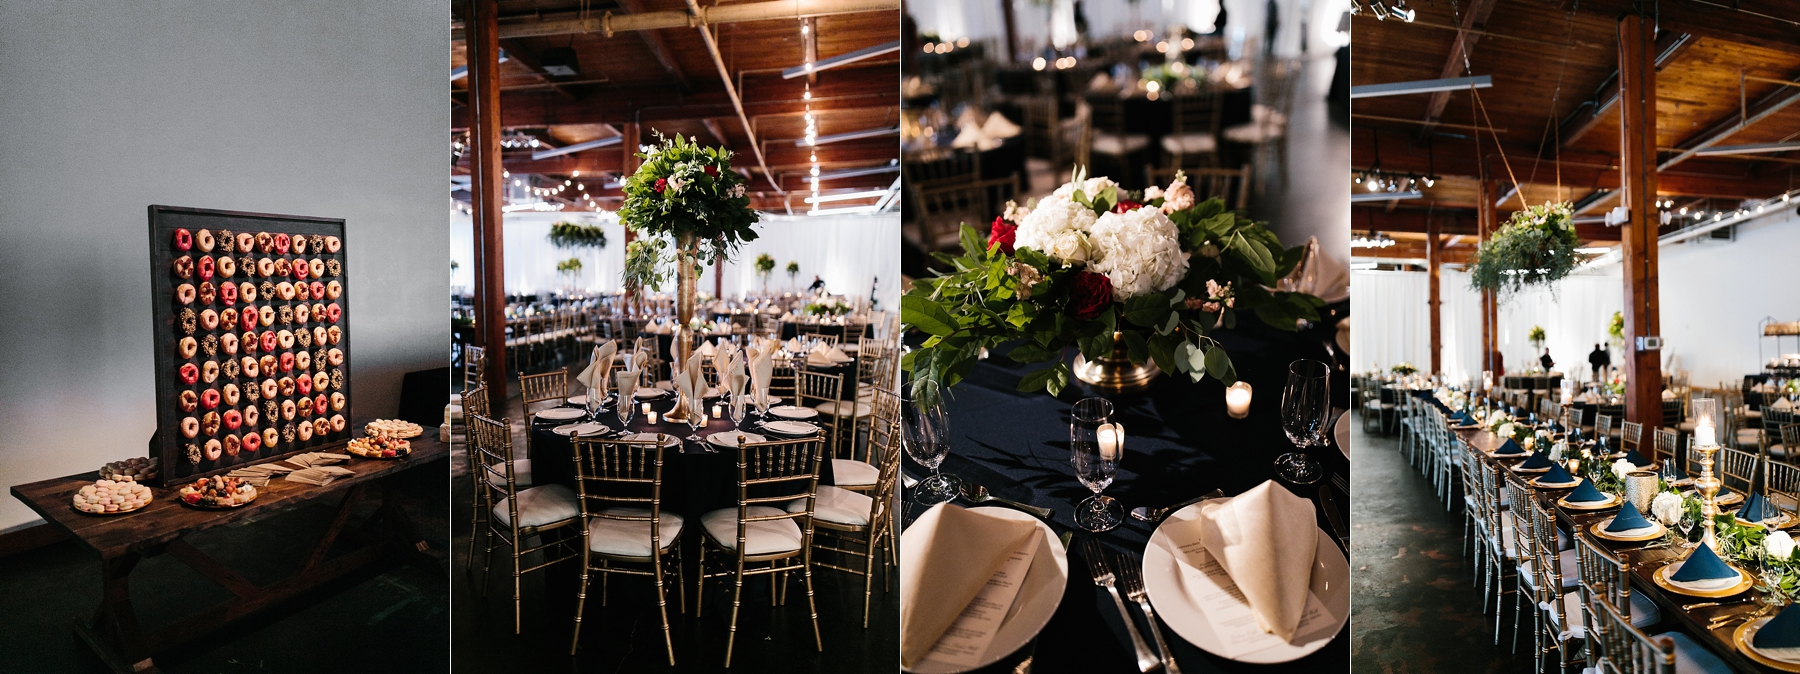 Emily + Caleb _ an elegant, intentional, industrial style wedding with navy + gold accents at 6500 in Dallas, TX by North Texas Wedding Photographer Rachel Meagan Photography _ 074